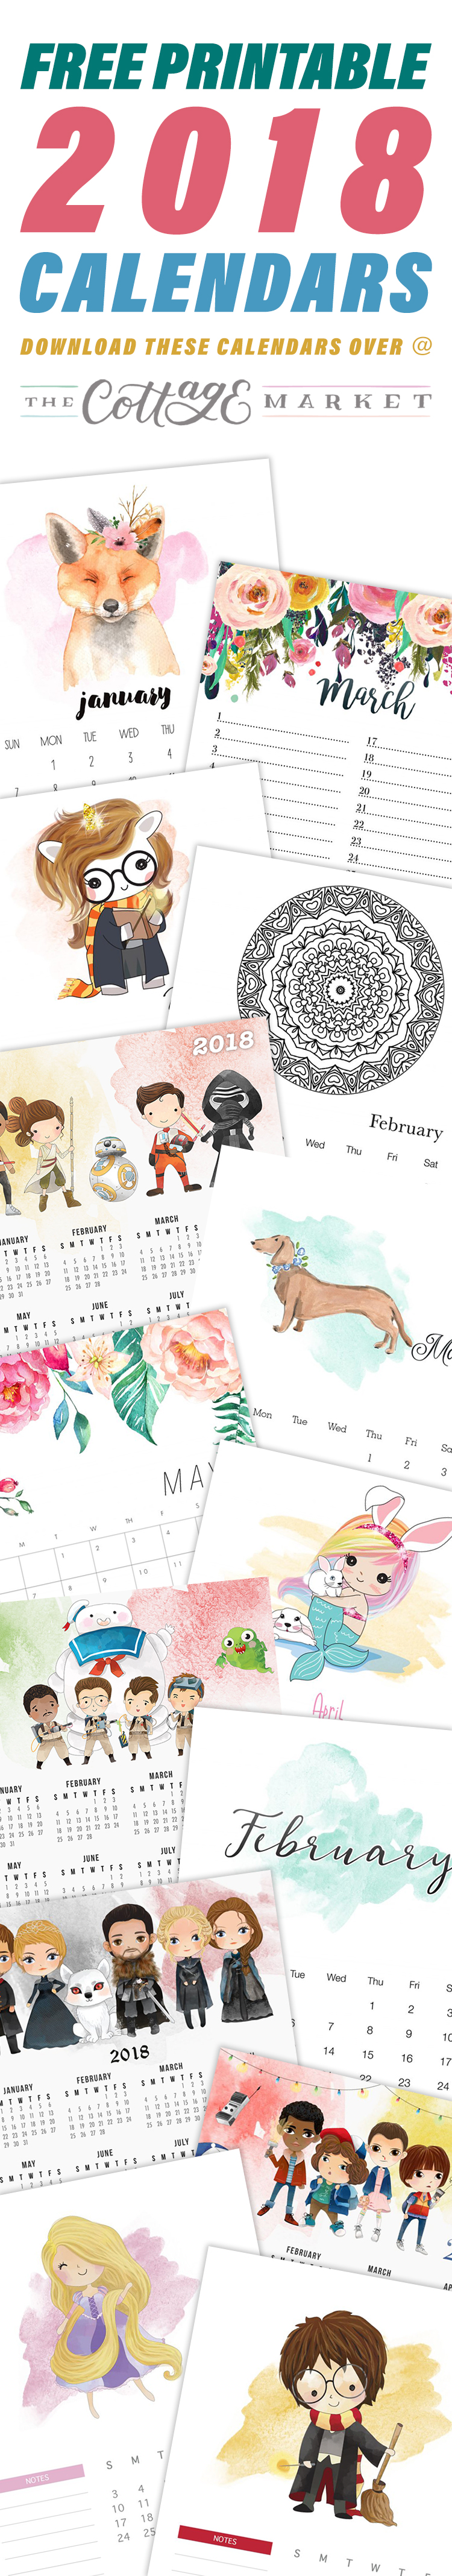 The Complete 2018 Printable Calendars Collection from The Cottage Market